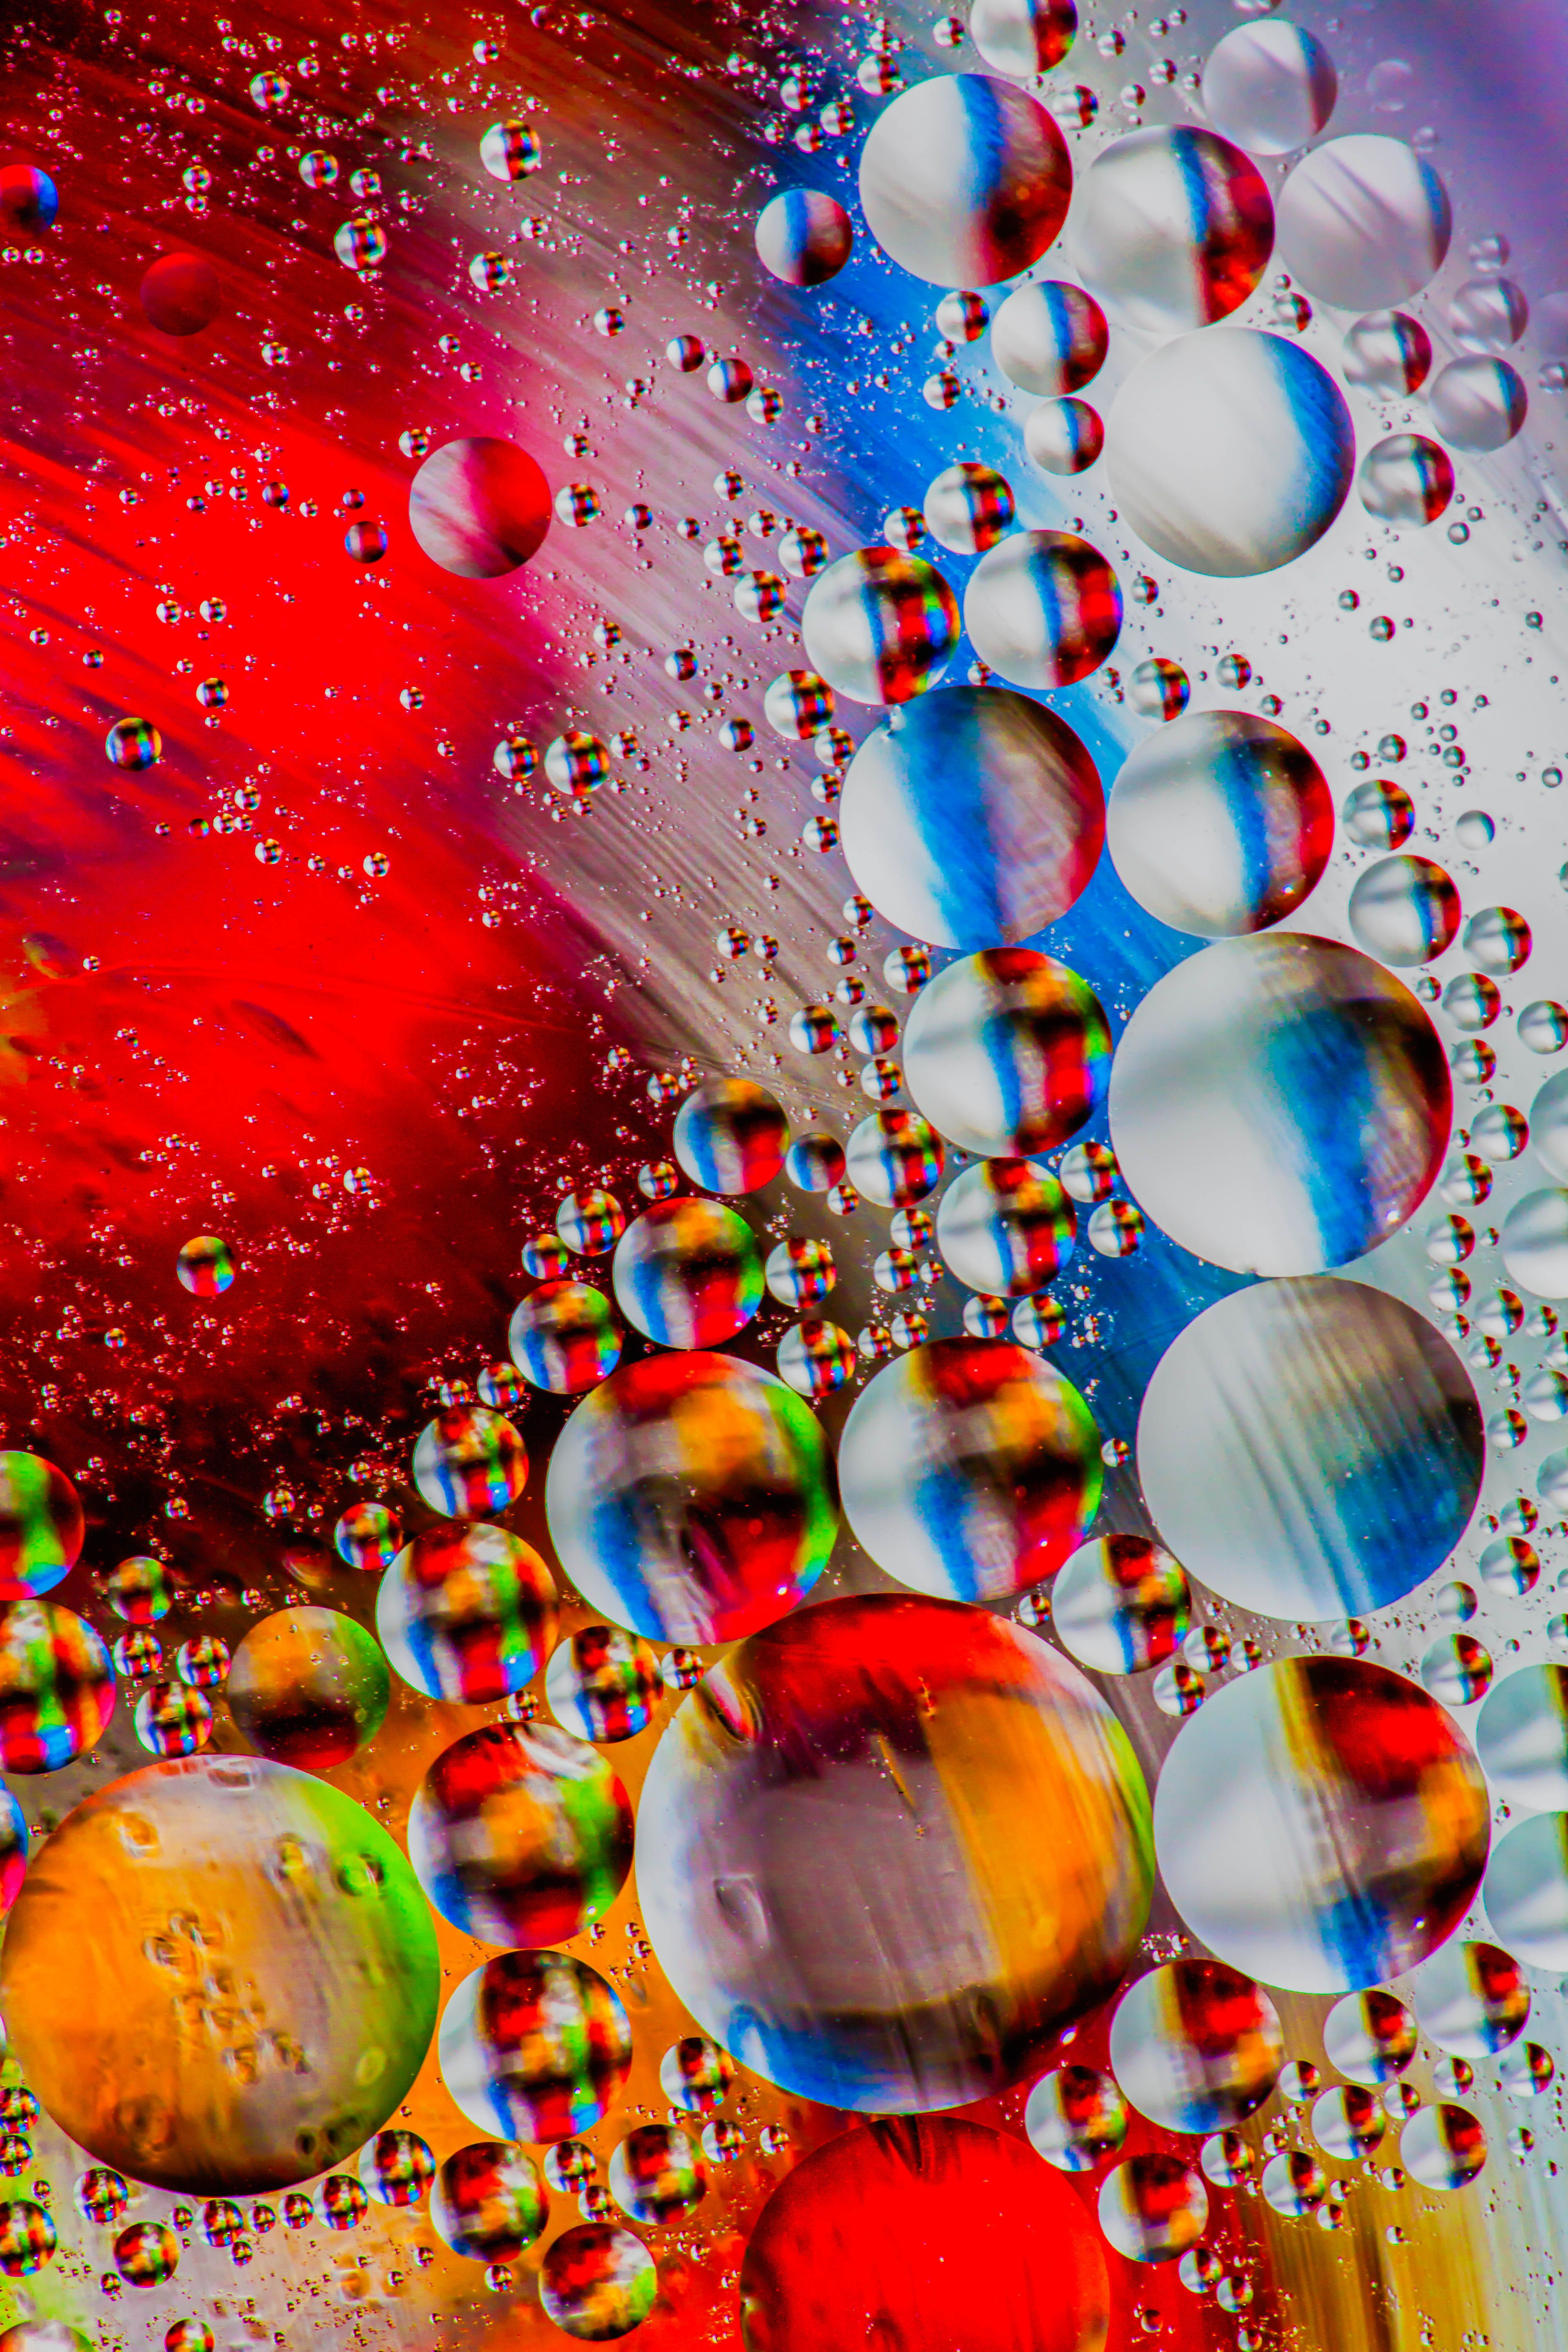 Arte Abstracto Amor Arte Abstracto Photography Bubbles Things For My Wall Arte